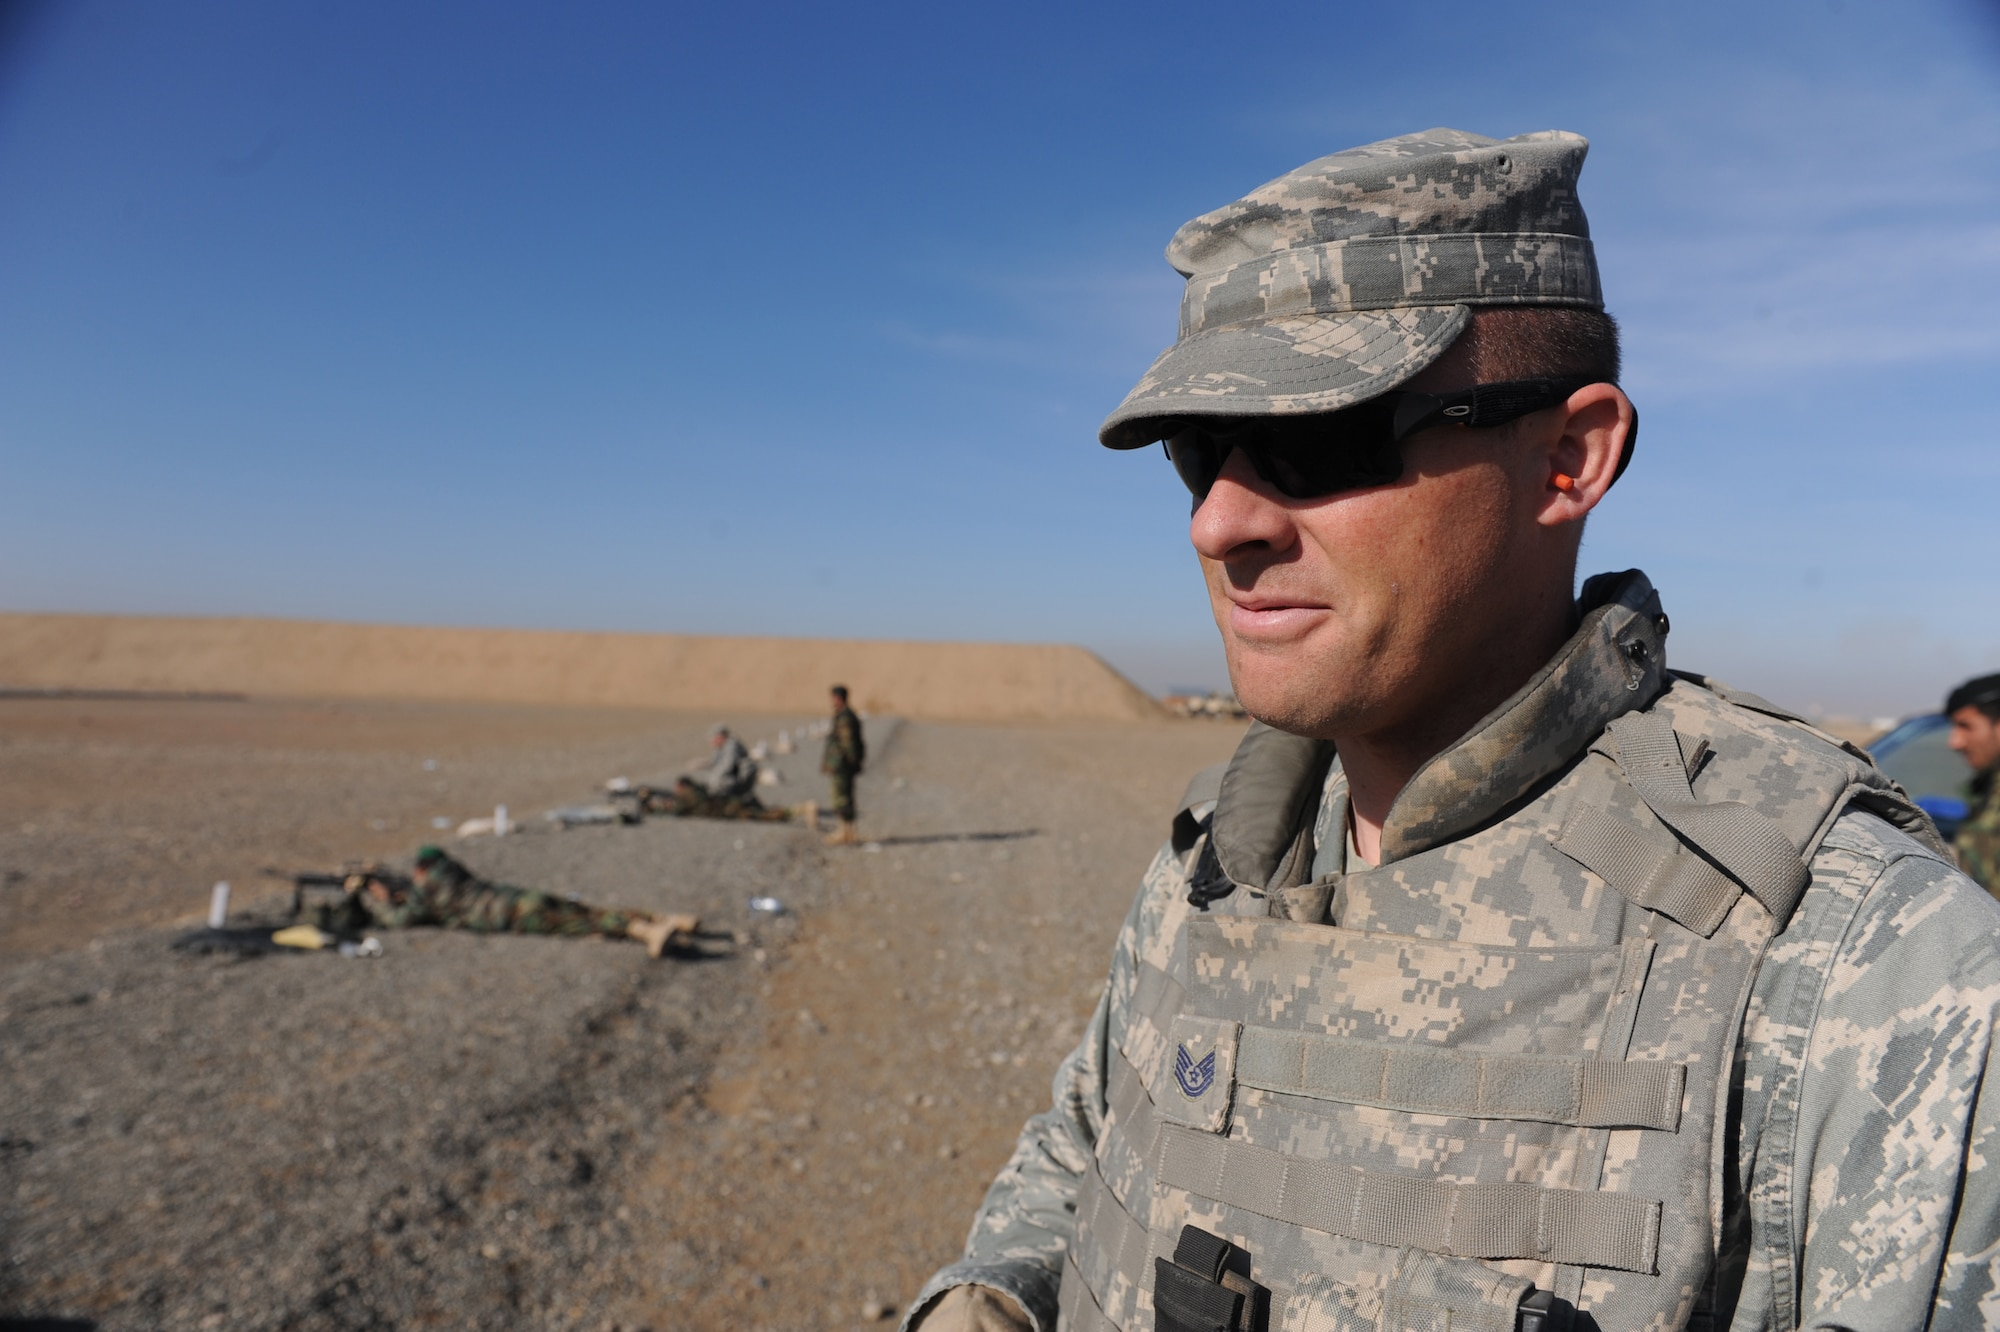 Tech. Sgt. Kevin Conley, 738th Air Expeditionary Advisory Group Security Forces advisor, watches Afghanistan National Army Air Corps soldiers train on the M-240B machine gun in Kandahar, Afghanistan, Jan. 4, 2010. Sergeant Conley is one of 24 mentors assigned to the 738th AEAG. He is deployed from Offutt Air Force Base, Neb., in support of Operation Enduring Freedom. (U.S. Air Force photo/Staff Sgt. Manuel J. Martinez/Released)